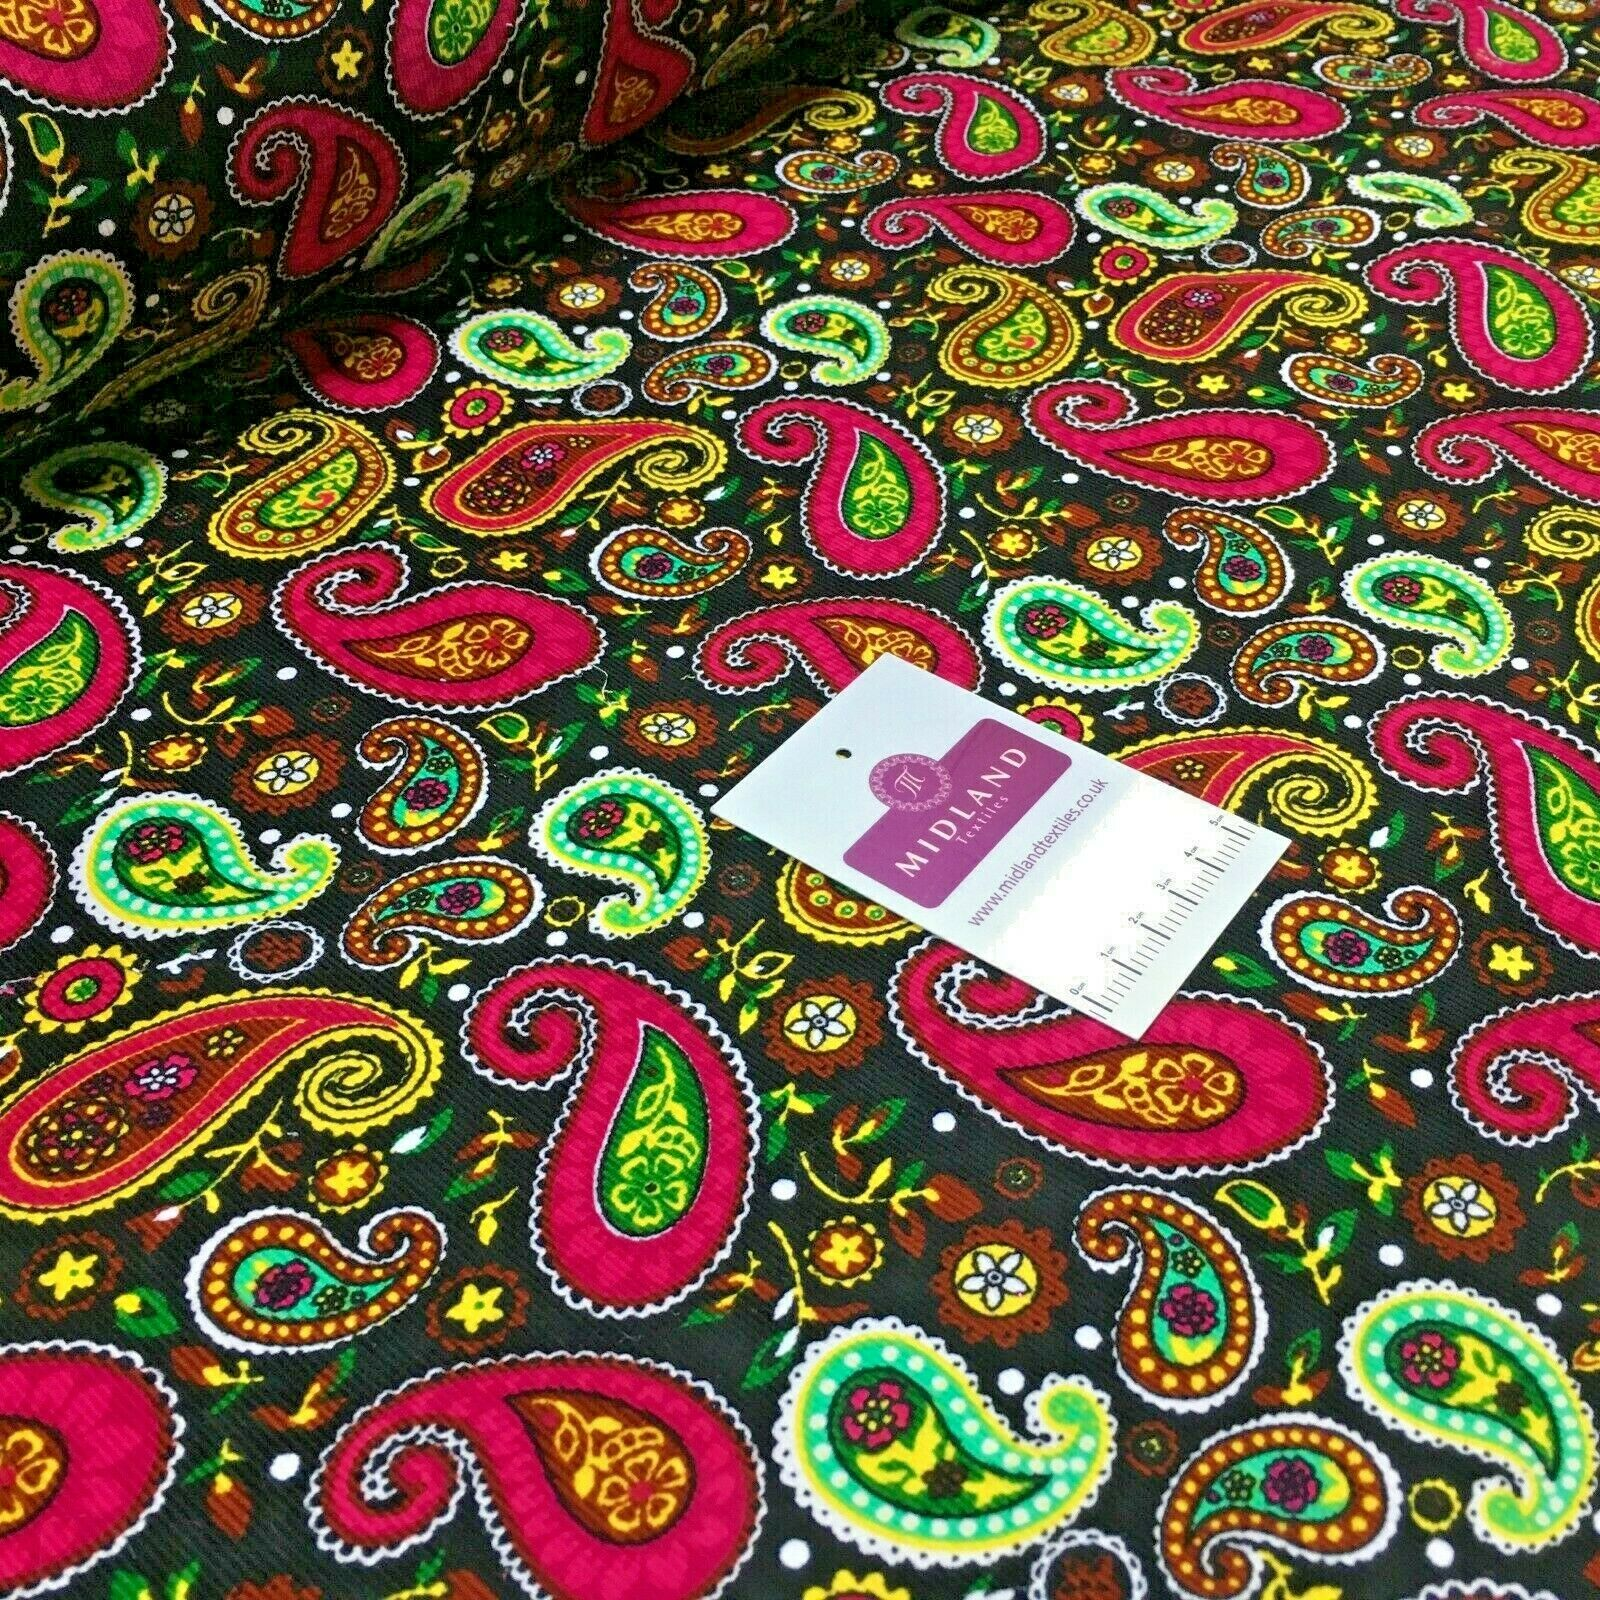 Paisley printed corduroy dress Fabric MH1489